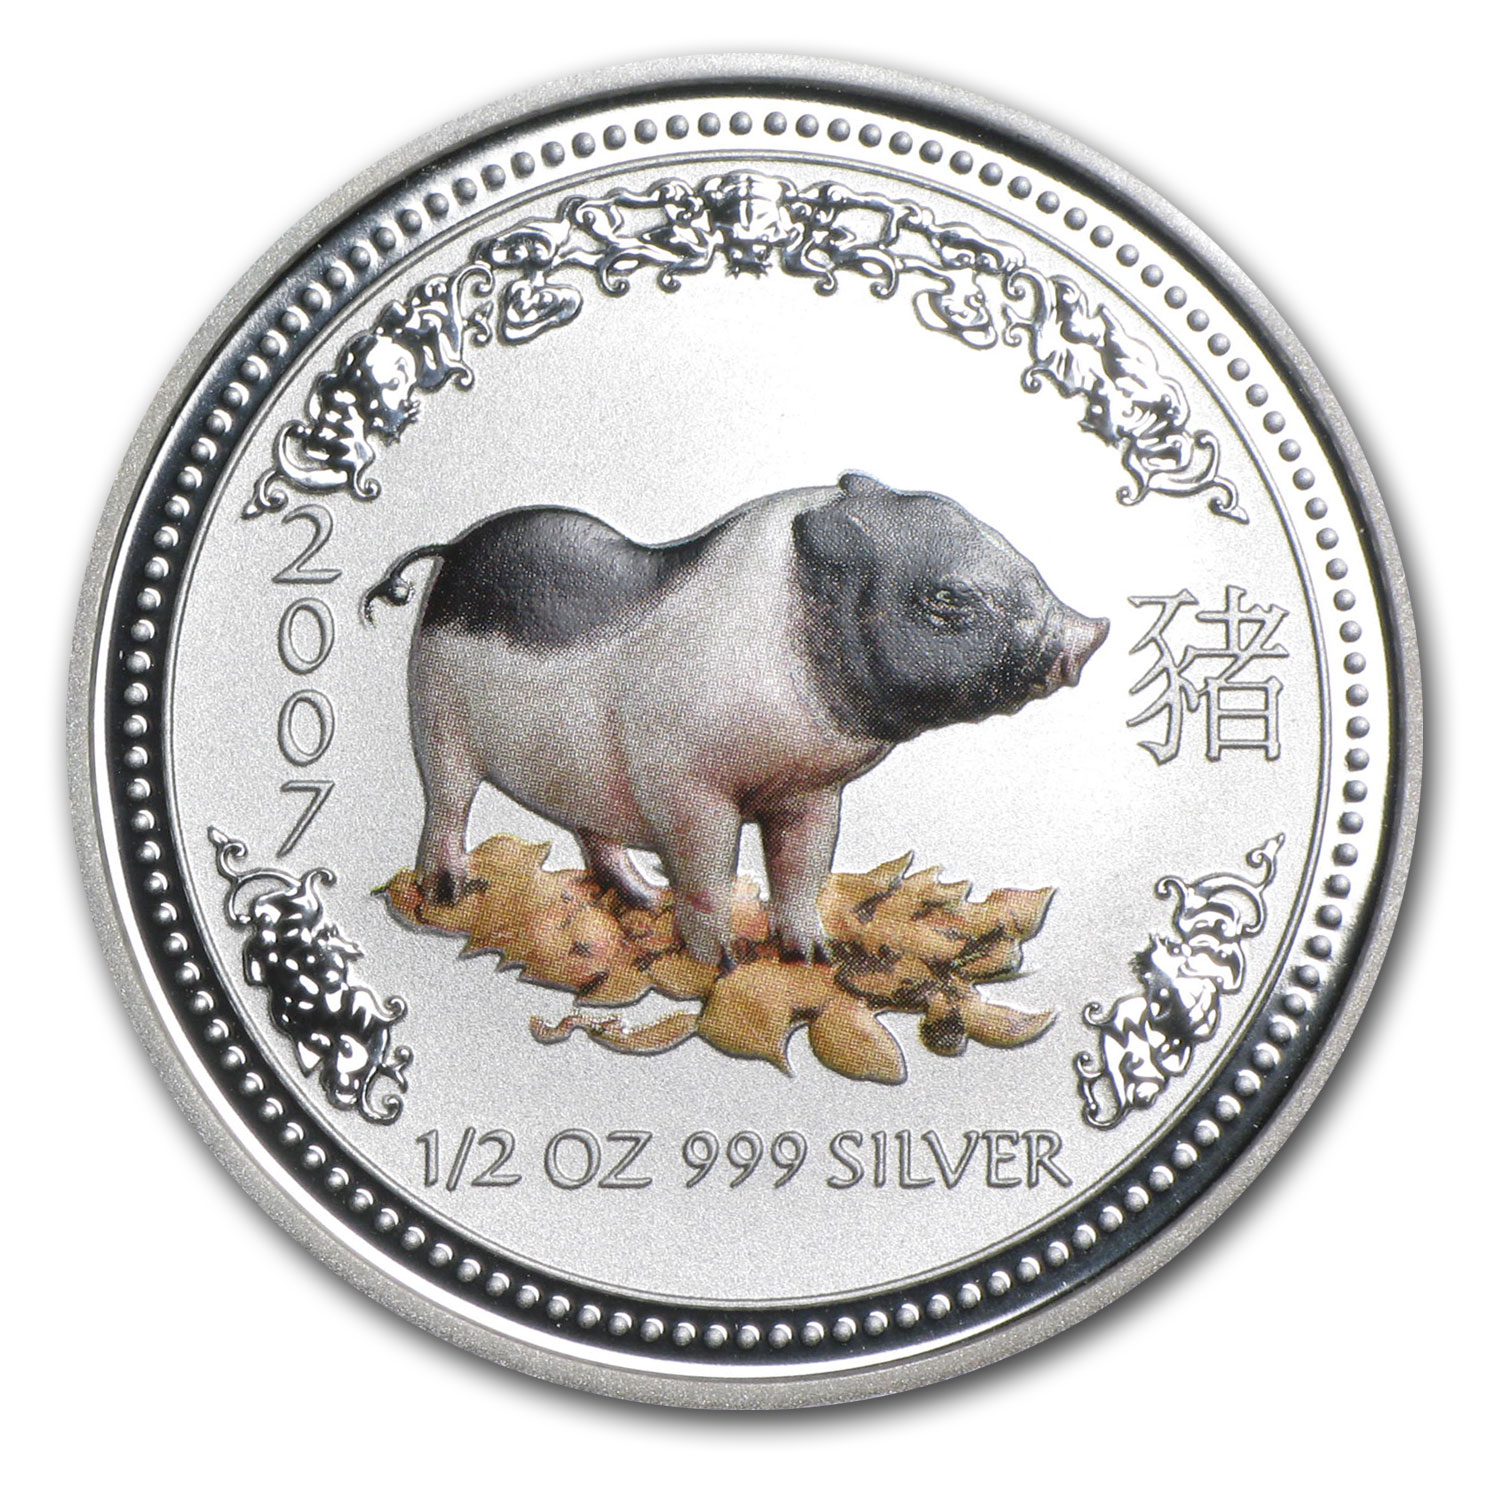 2007 1/2 oz Silver Australian Year of the Pig BU (Colorized)